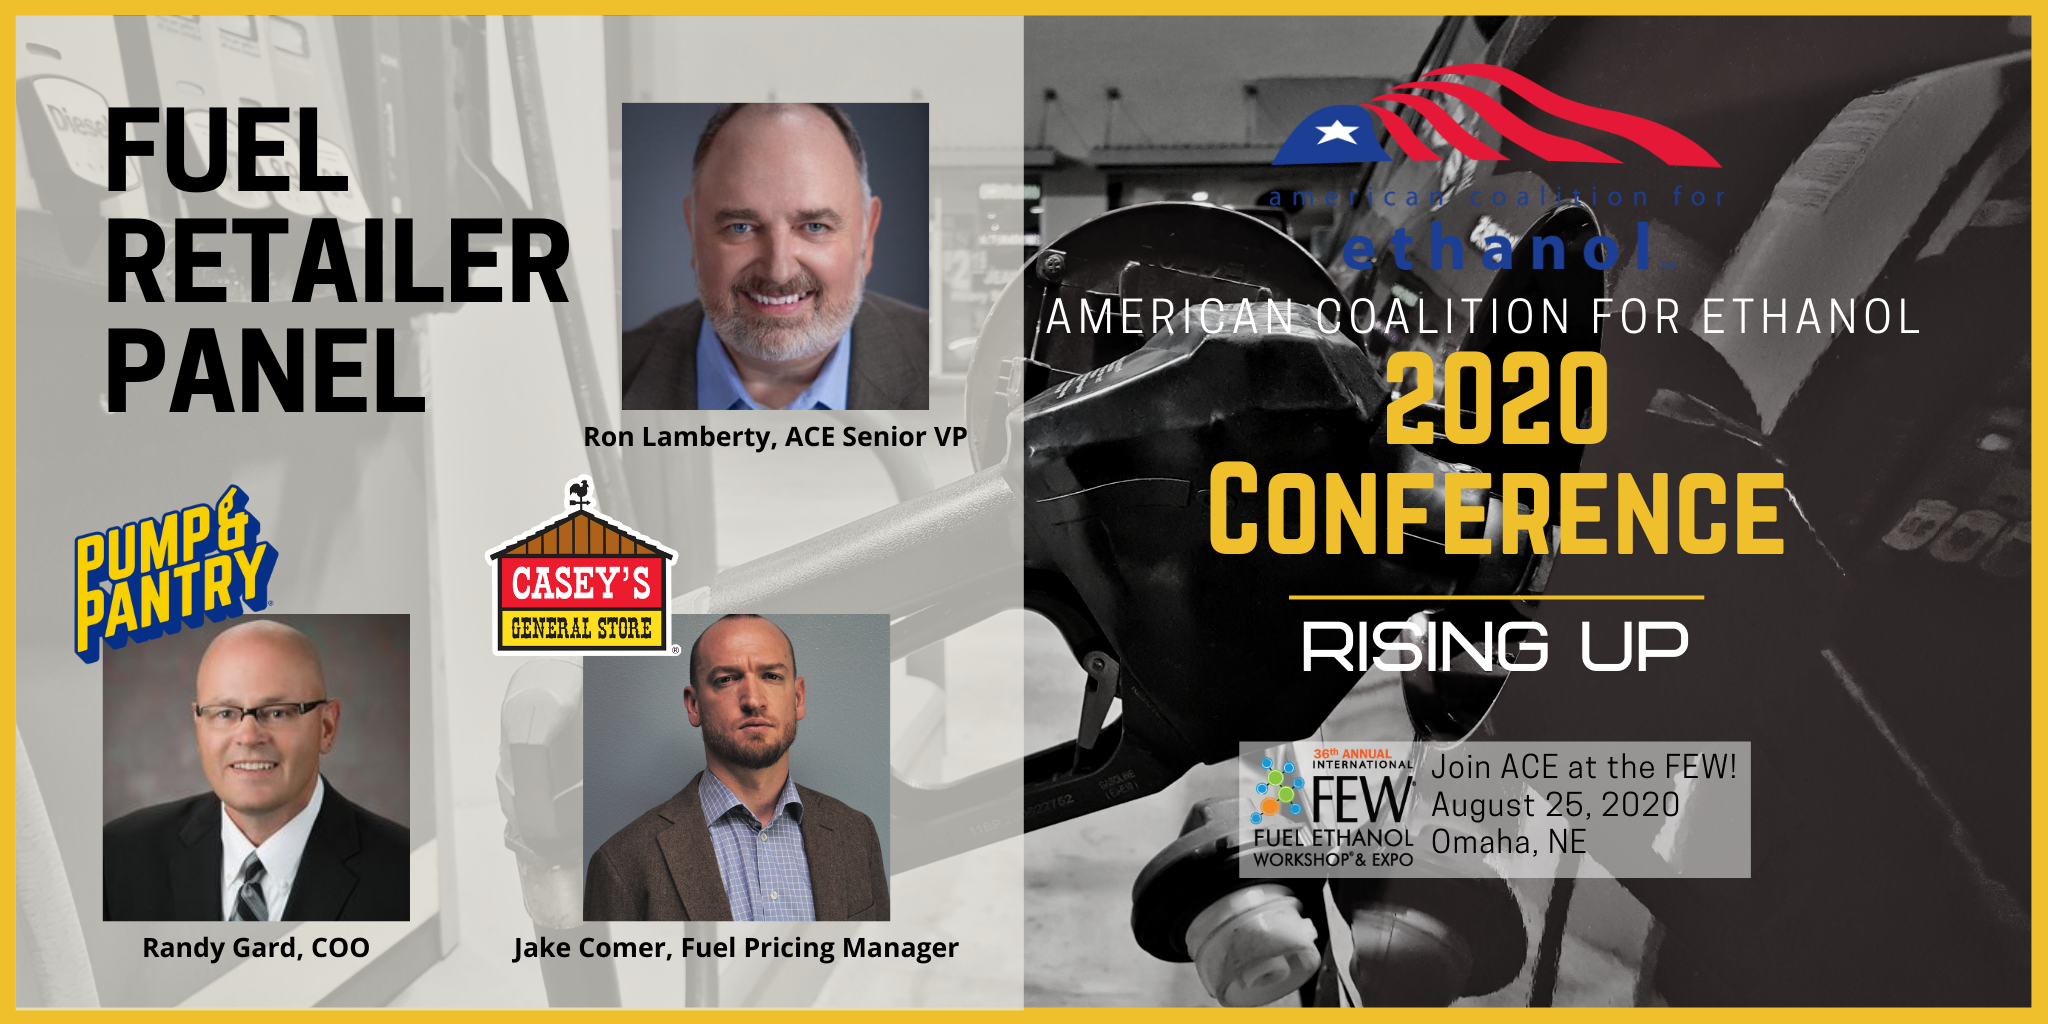 Fuel marketers to share E15, flex fuel retail experience amid COVID-19, HBIIP rollout at August ACE conference